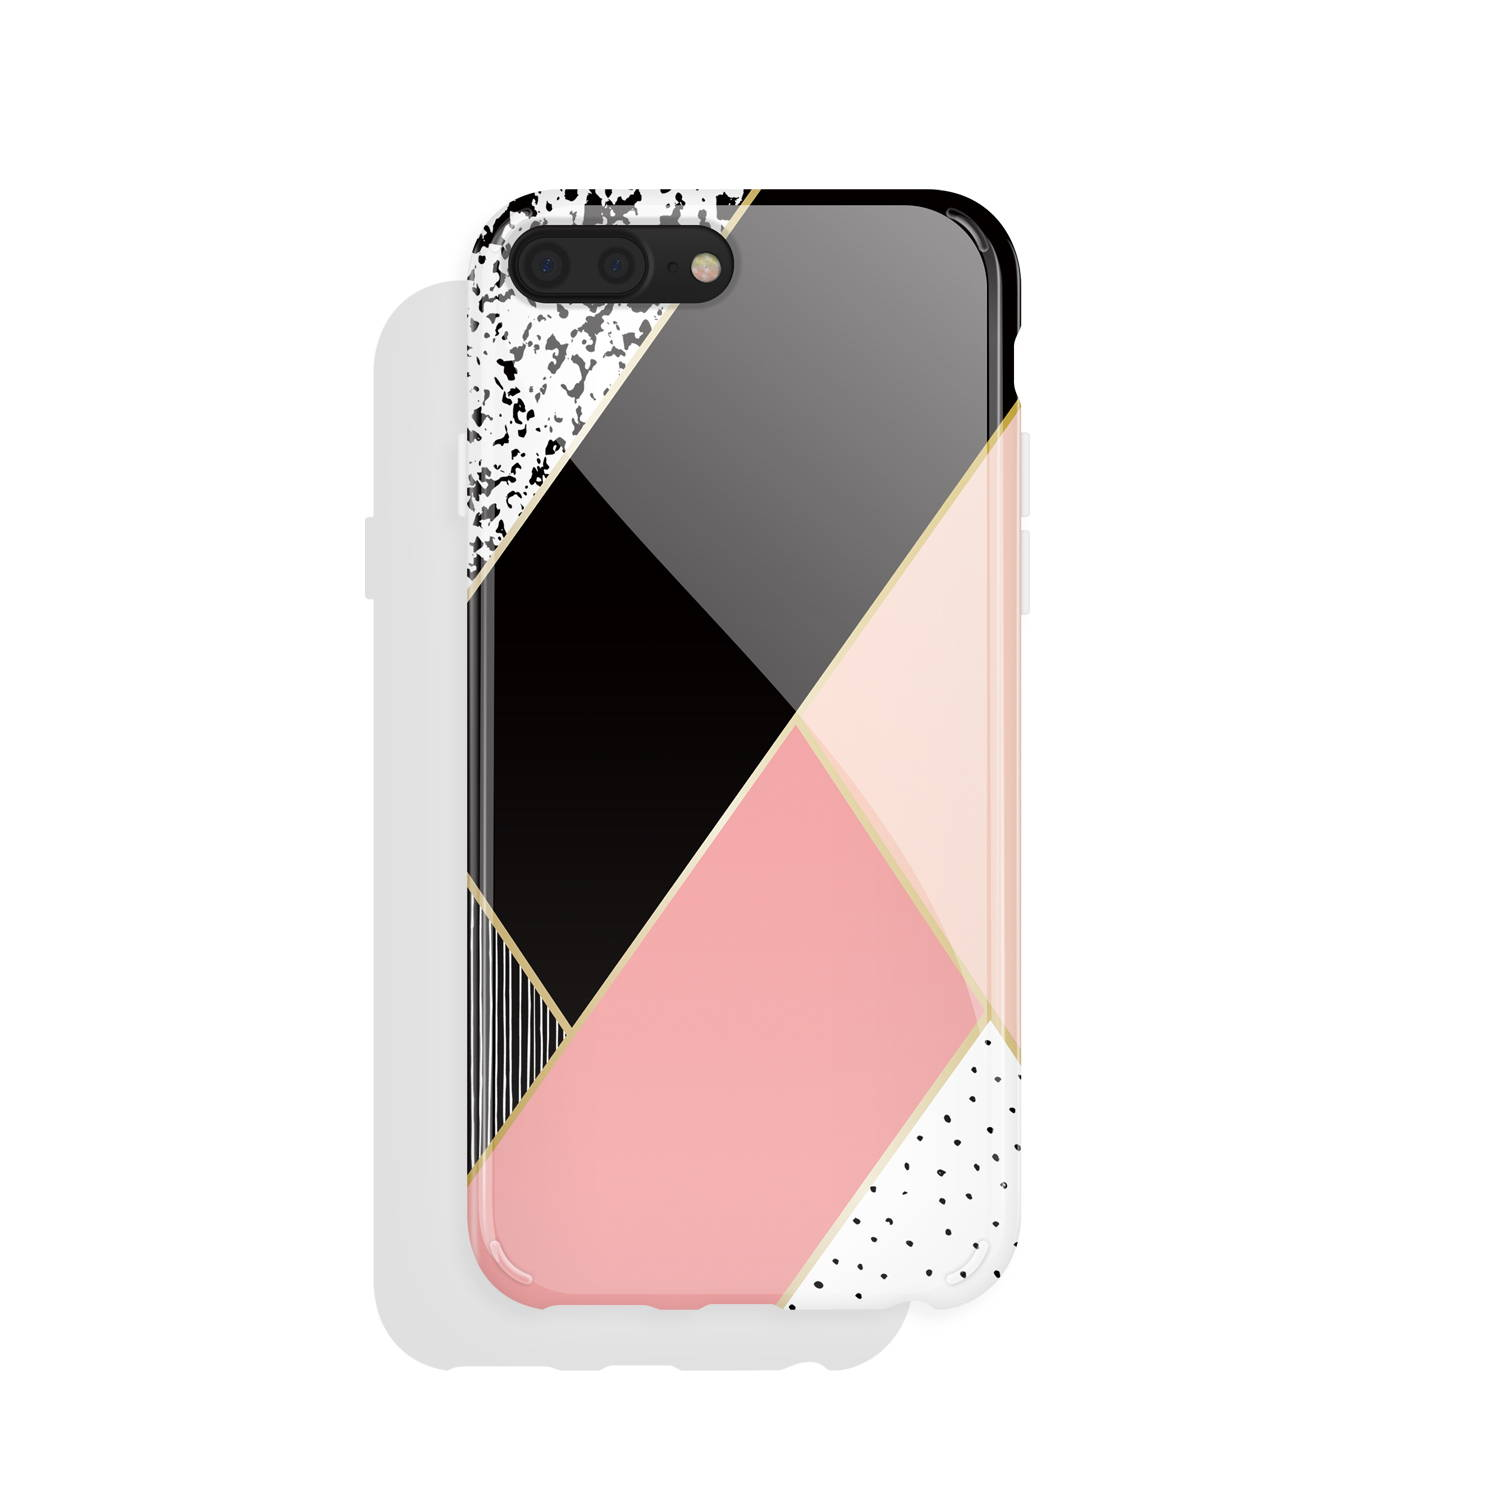 akna iphone 8 plus case